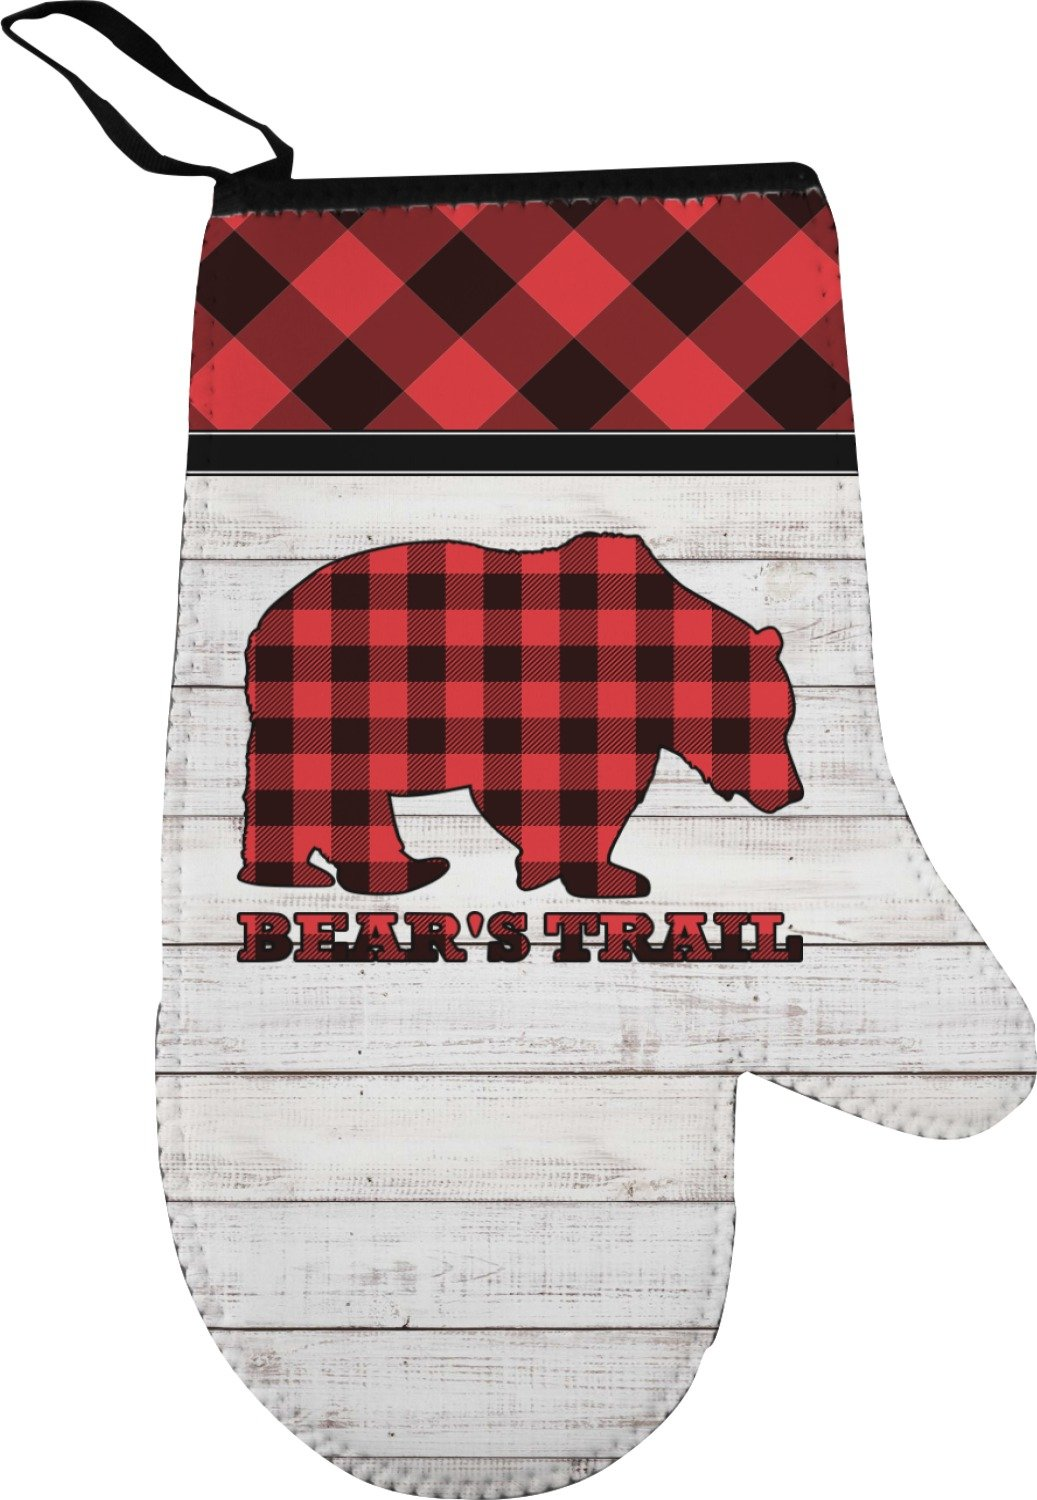 a3f9dbc8a Amazon.com  YouCustomizeIt Lumberjack Plaid Right Oven Mitt (Personalized)   Home   Kitchen